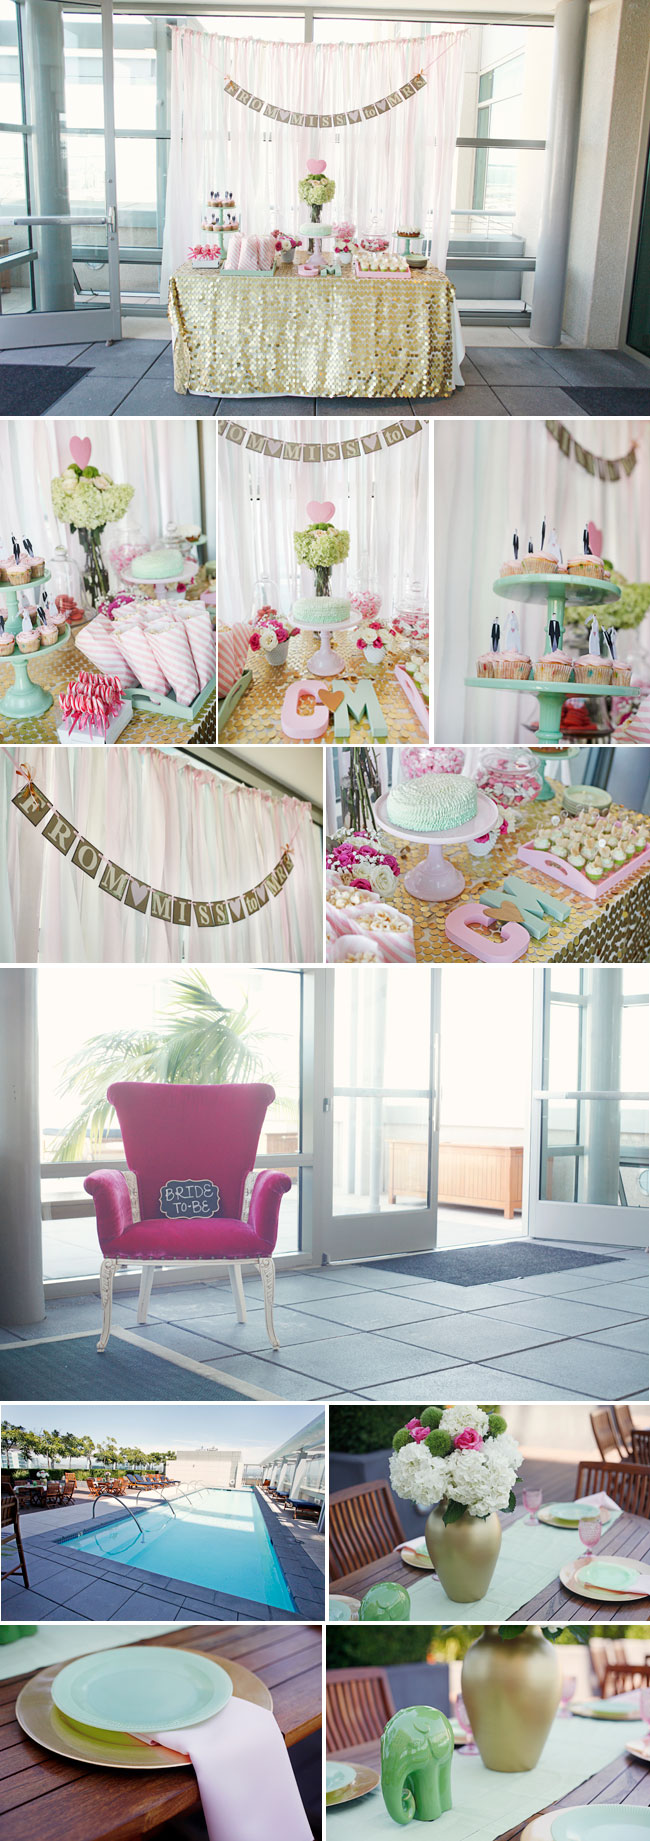 Black White And Pink Table Outdoors